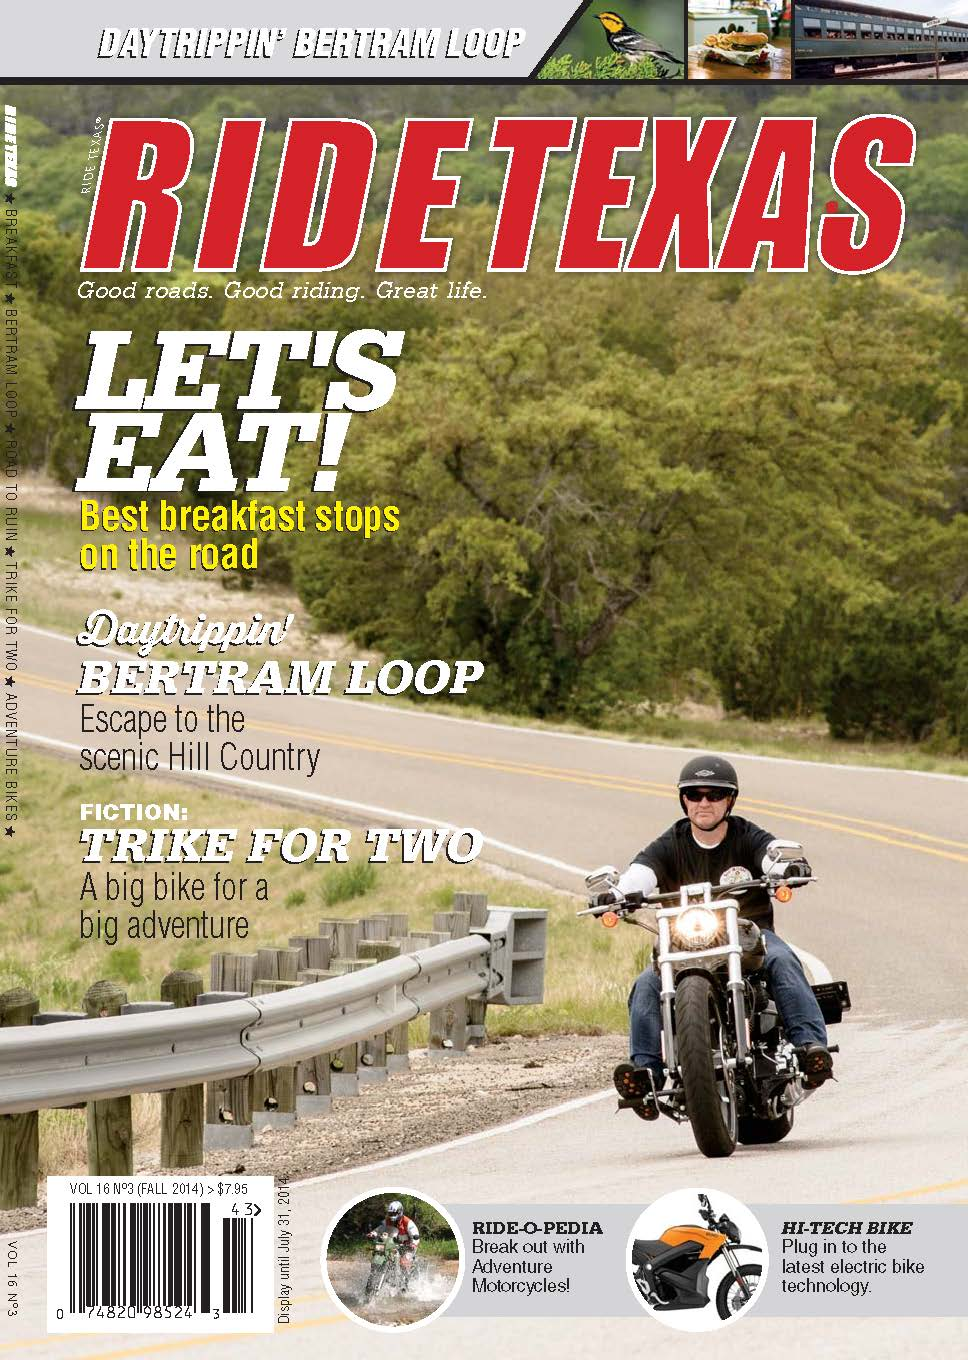 RIDE TEXAS® Volume 16 Issue 3: Best breakfast stops on the road, Daytrippin' Betram Loop - Escape to the scenic Hill Country, Fiction: Trike for Two, and more!